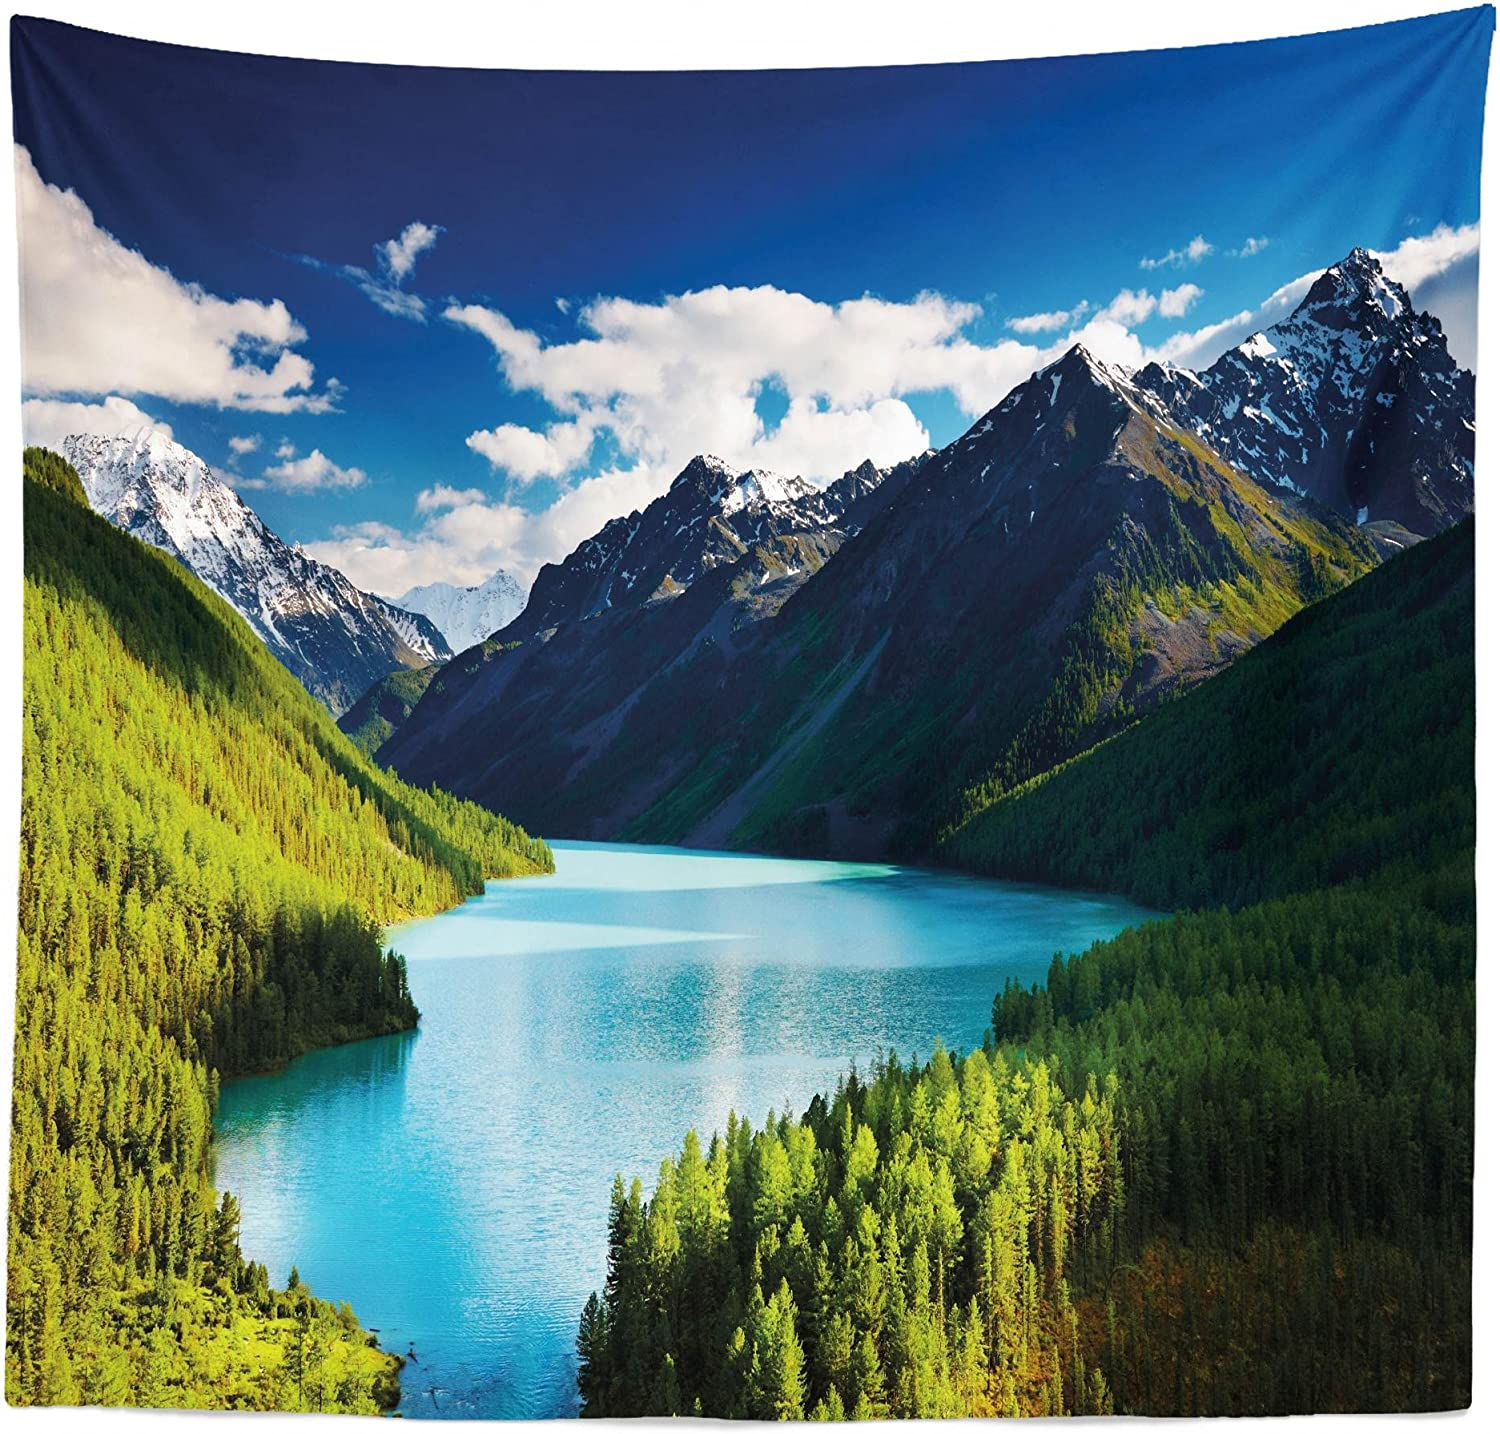 """Lunarable Nature Tapestry Queen Size, Mountain Range and Lake with Idyllic Pine Forest Cloud Sky Calm Landscape, Wall Hanging Bedspread Bed Cover Wall Decor, 88"""" X 88"""", Olive Green"""